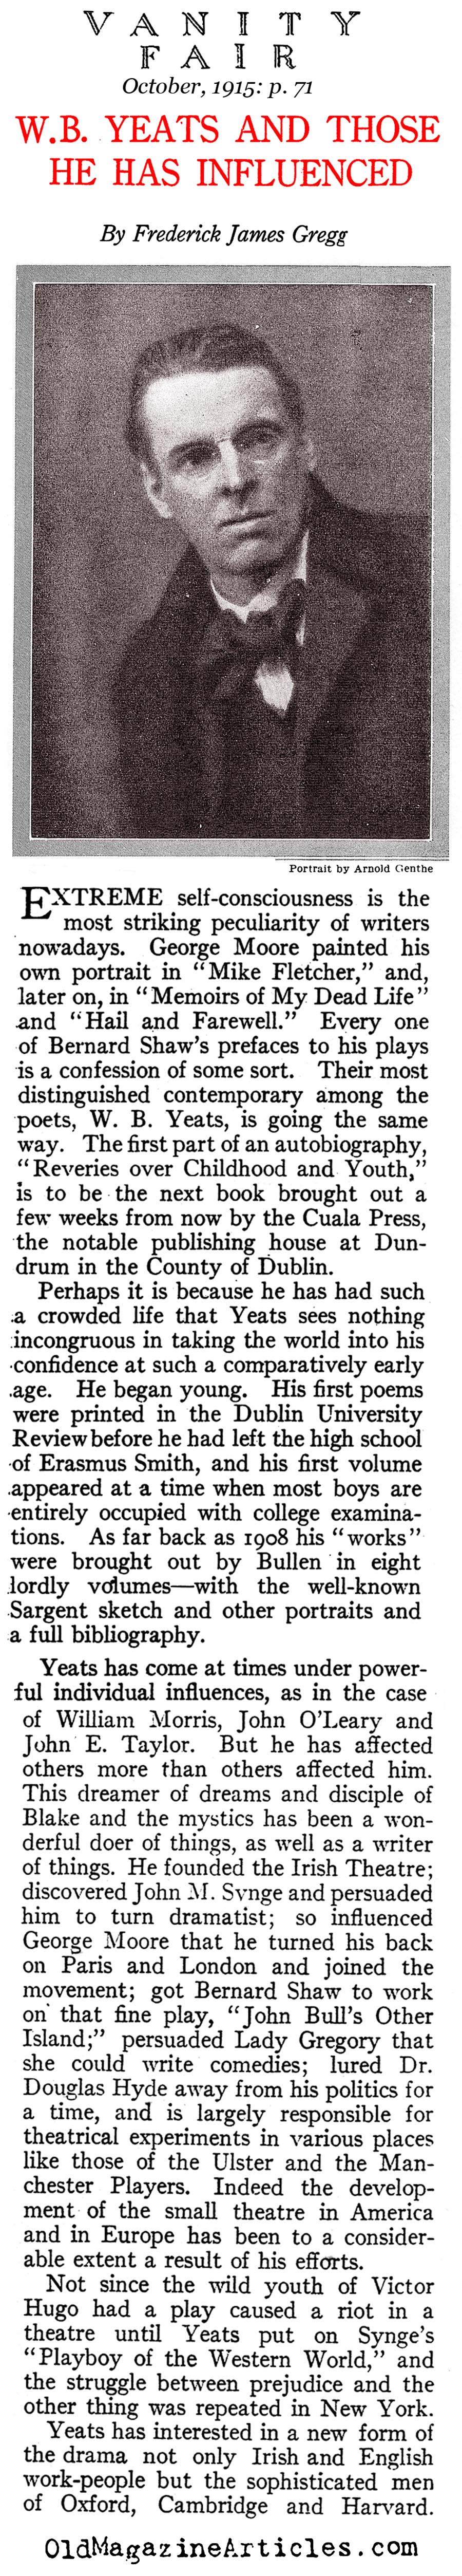 ''W. B. Yeats and Those He Has Influenced'' (Vanity Fair,1915)